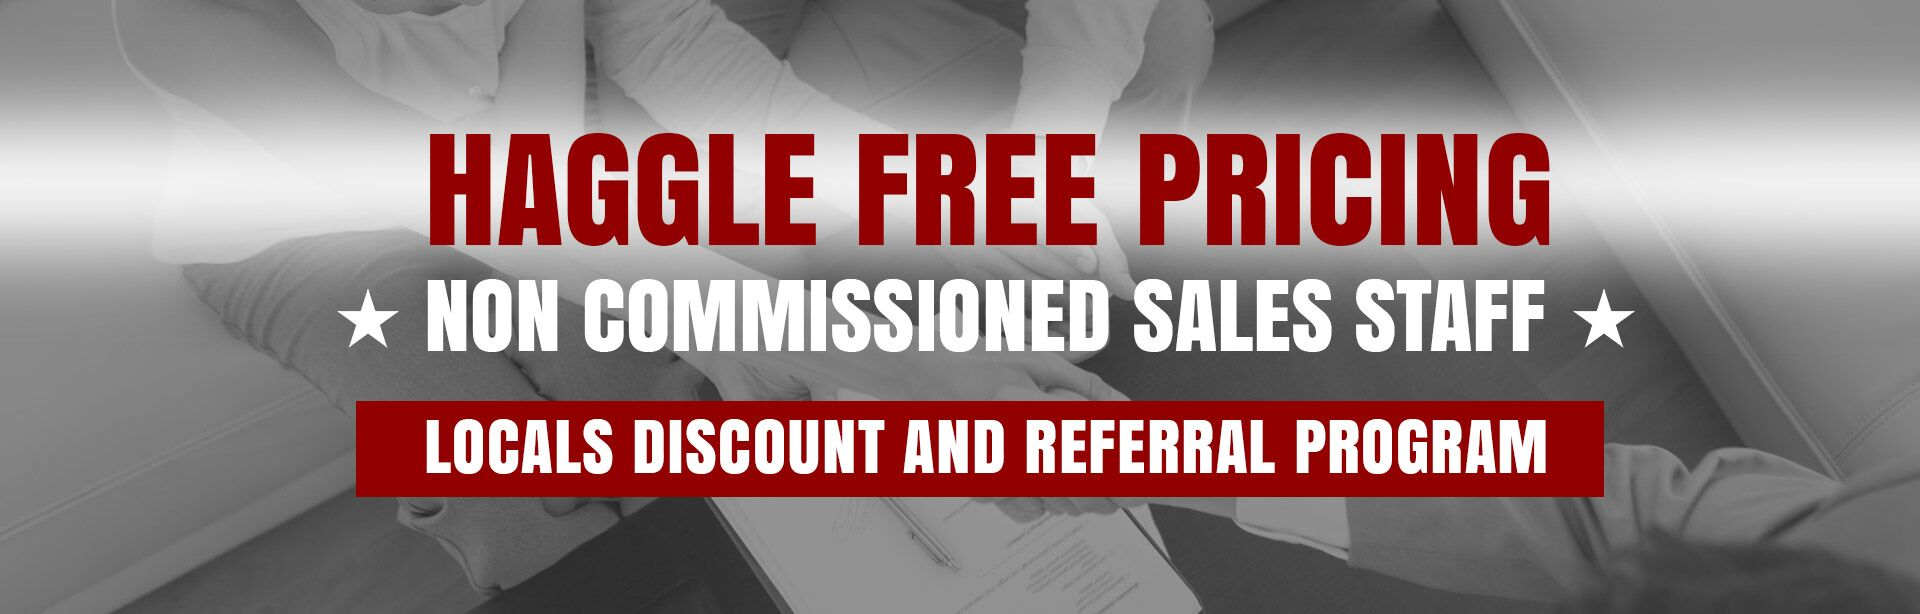 Haggle Free Pricing